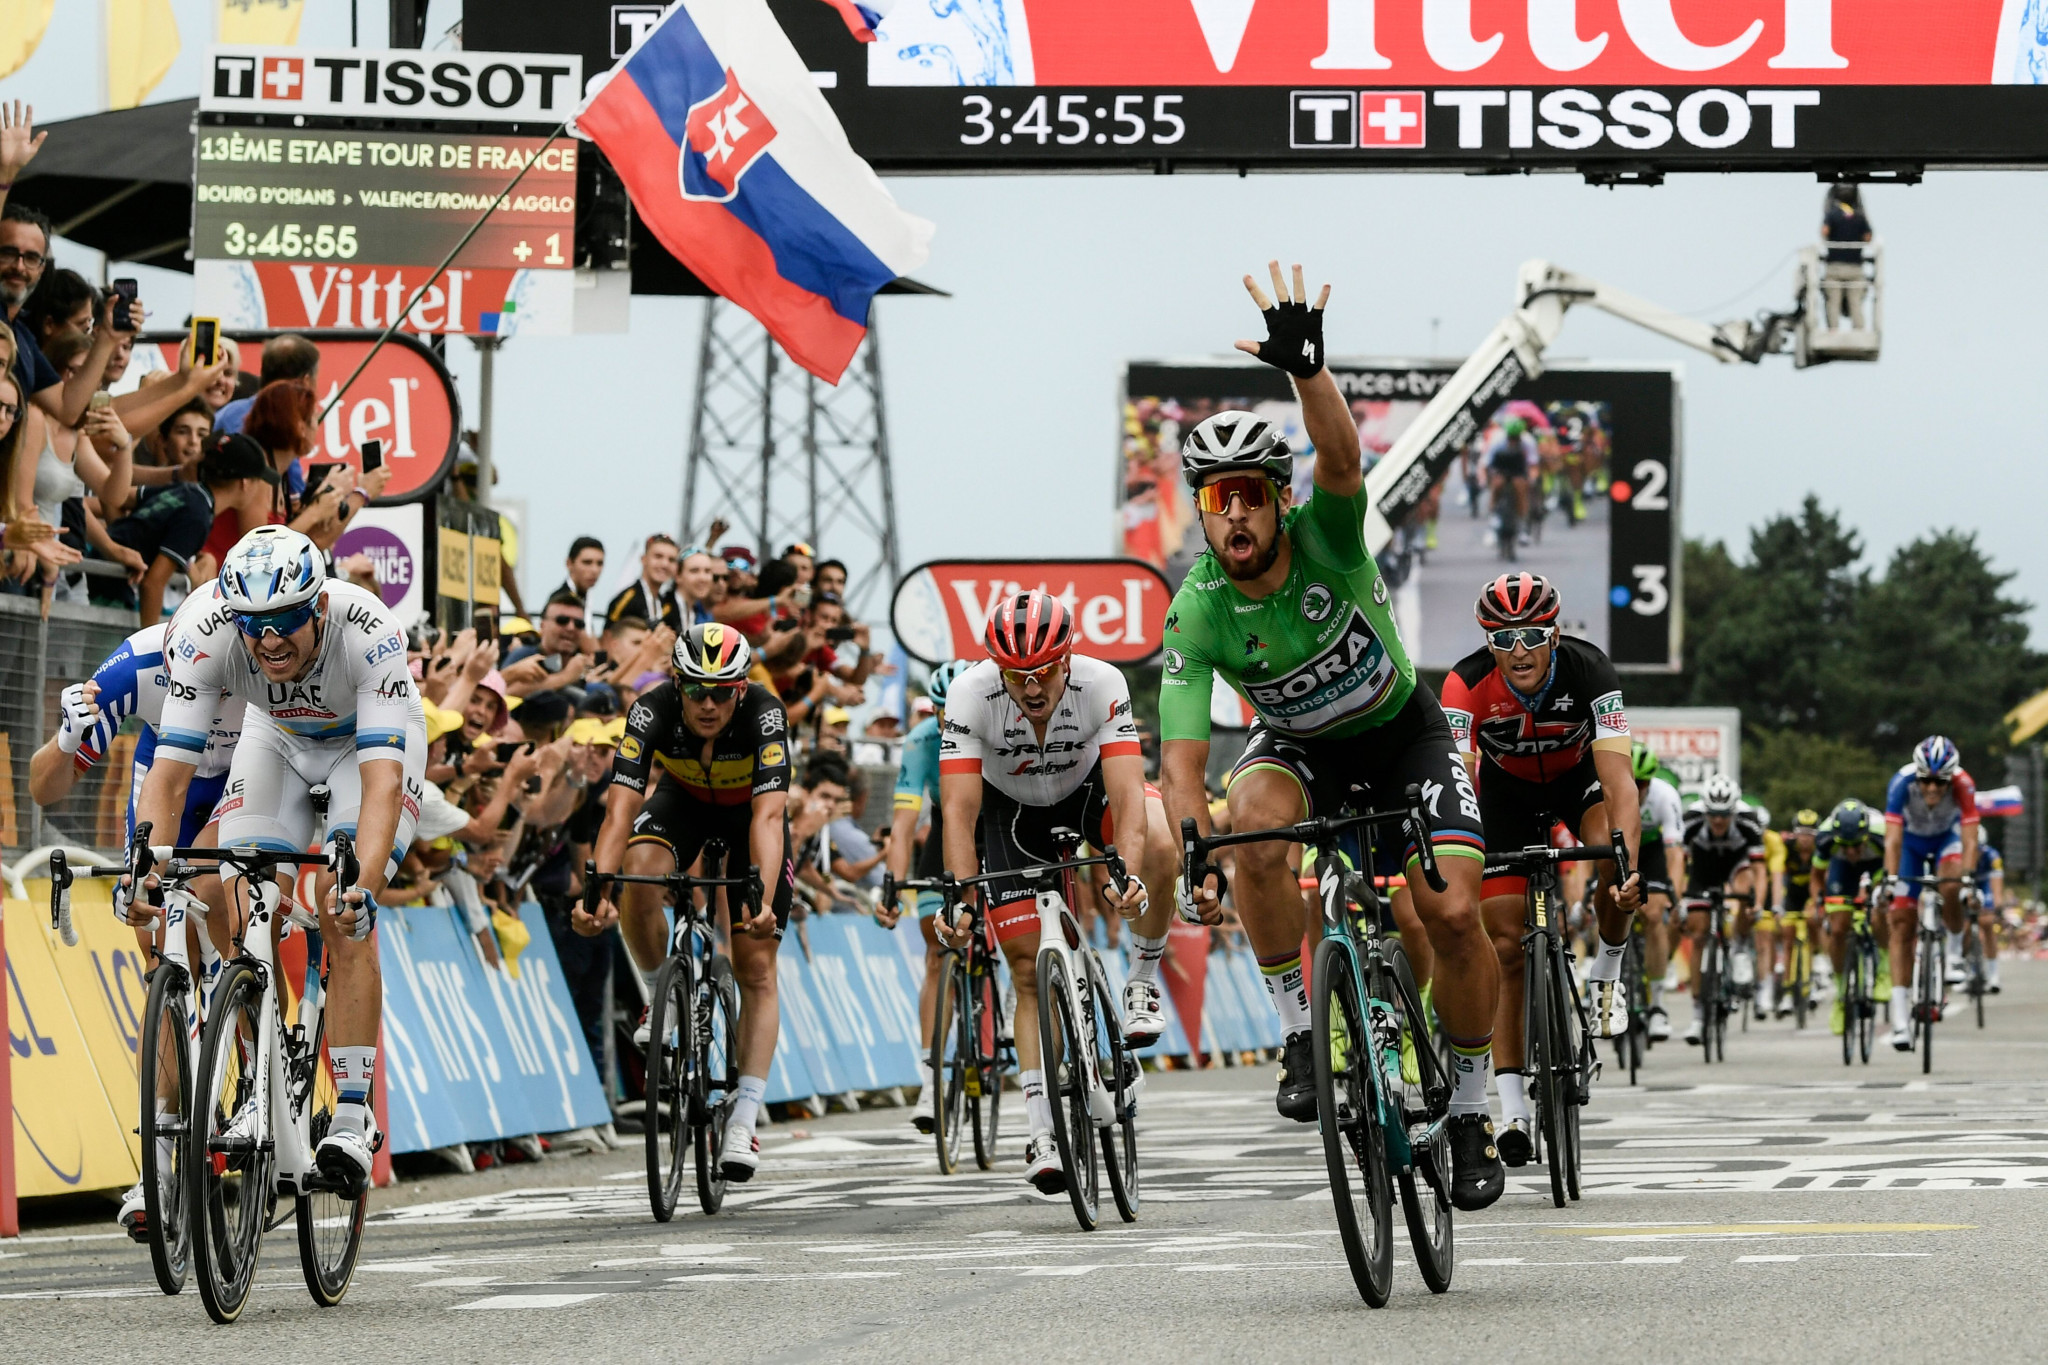 Sagan sprints to third Tour de France stage win as race director addresses fan incidents